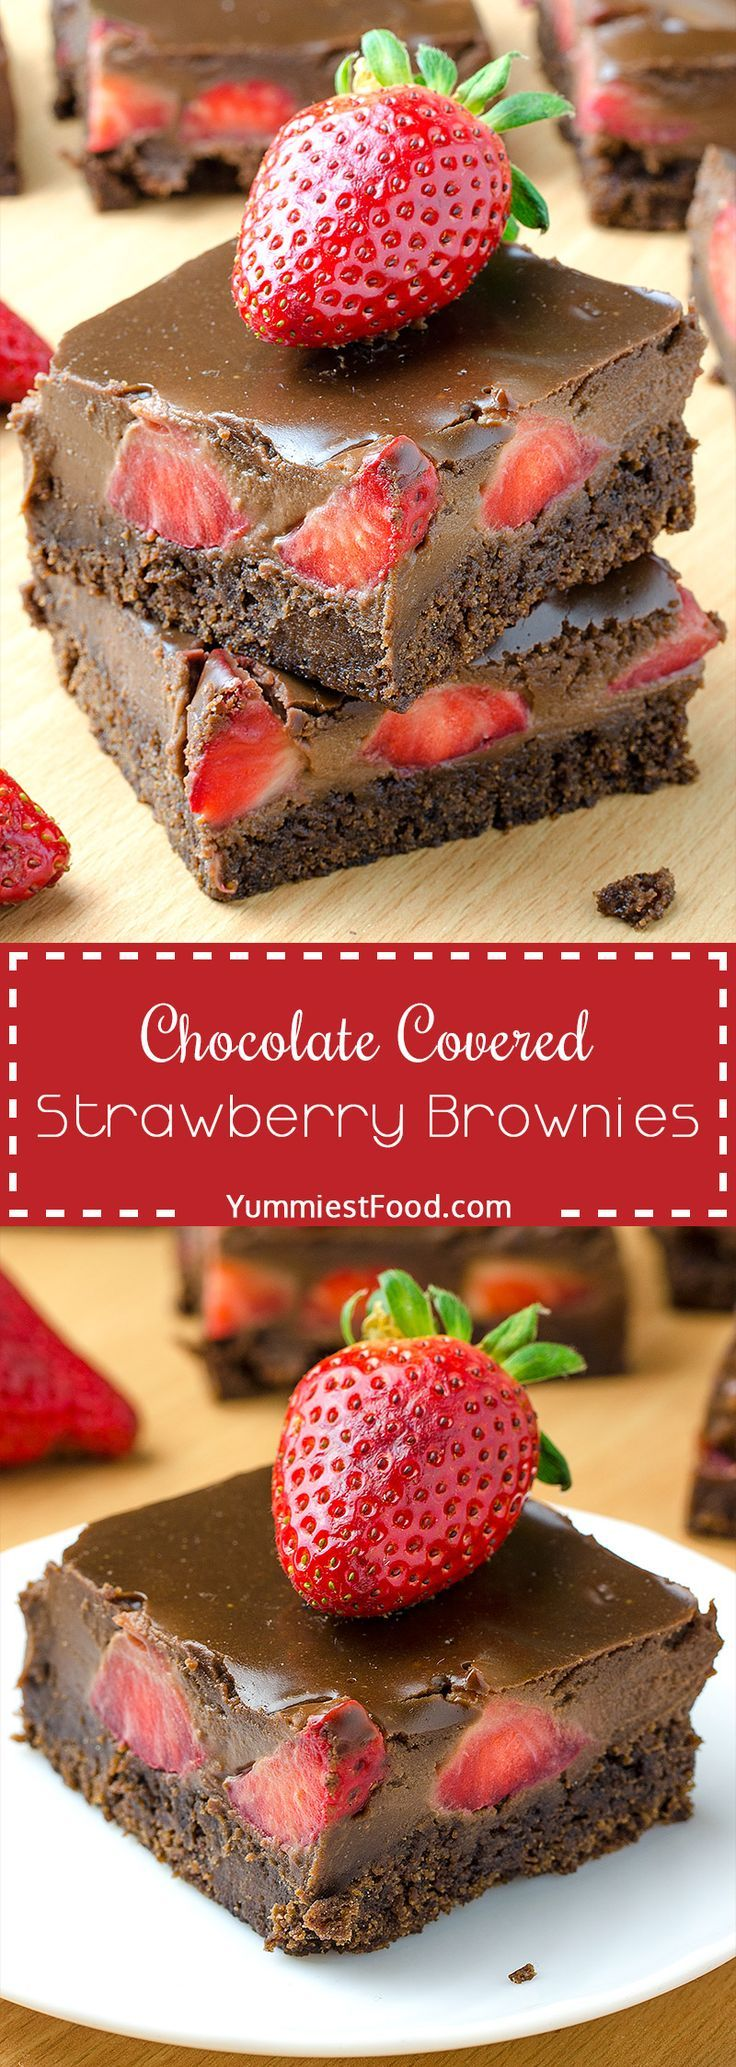 Chocolate Covered Strawberry Brownies – The BEST Brownies I have ever made! Perfect combination with Chocolate and Strawberries! Chocolate Covered Strawberry Brownies are so delicious, moist and very easy to make. I am sure you will never need another Brownie recipe!